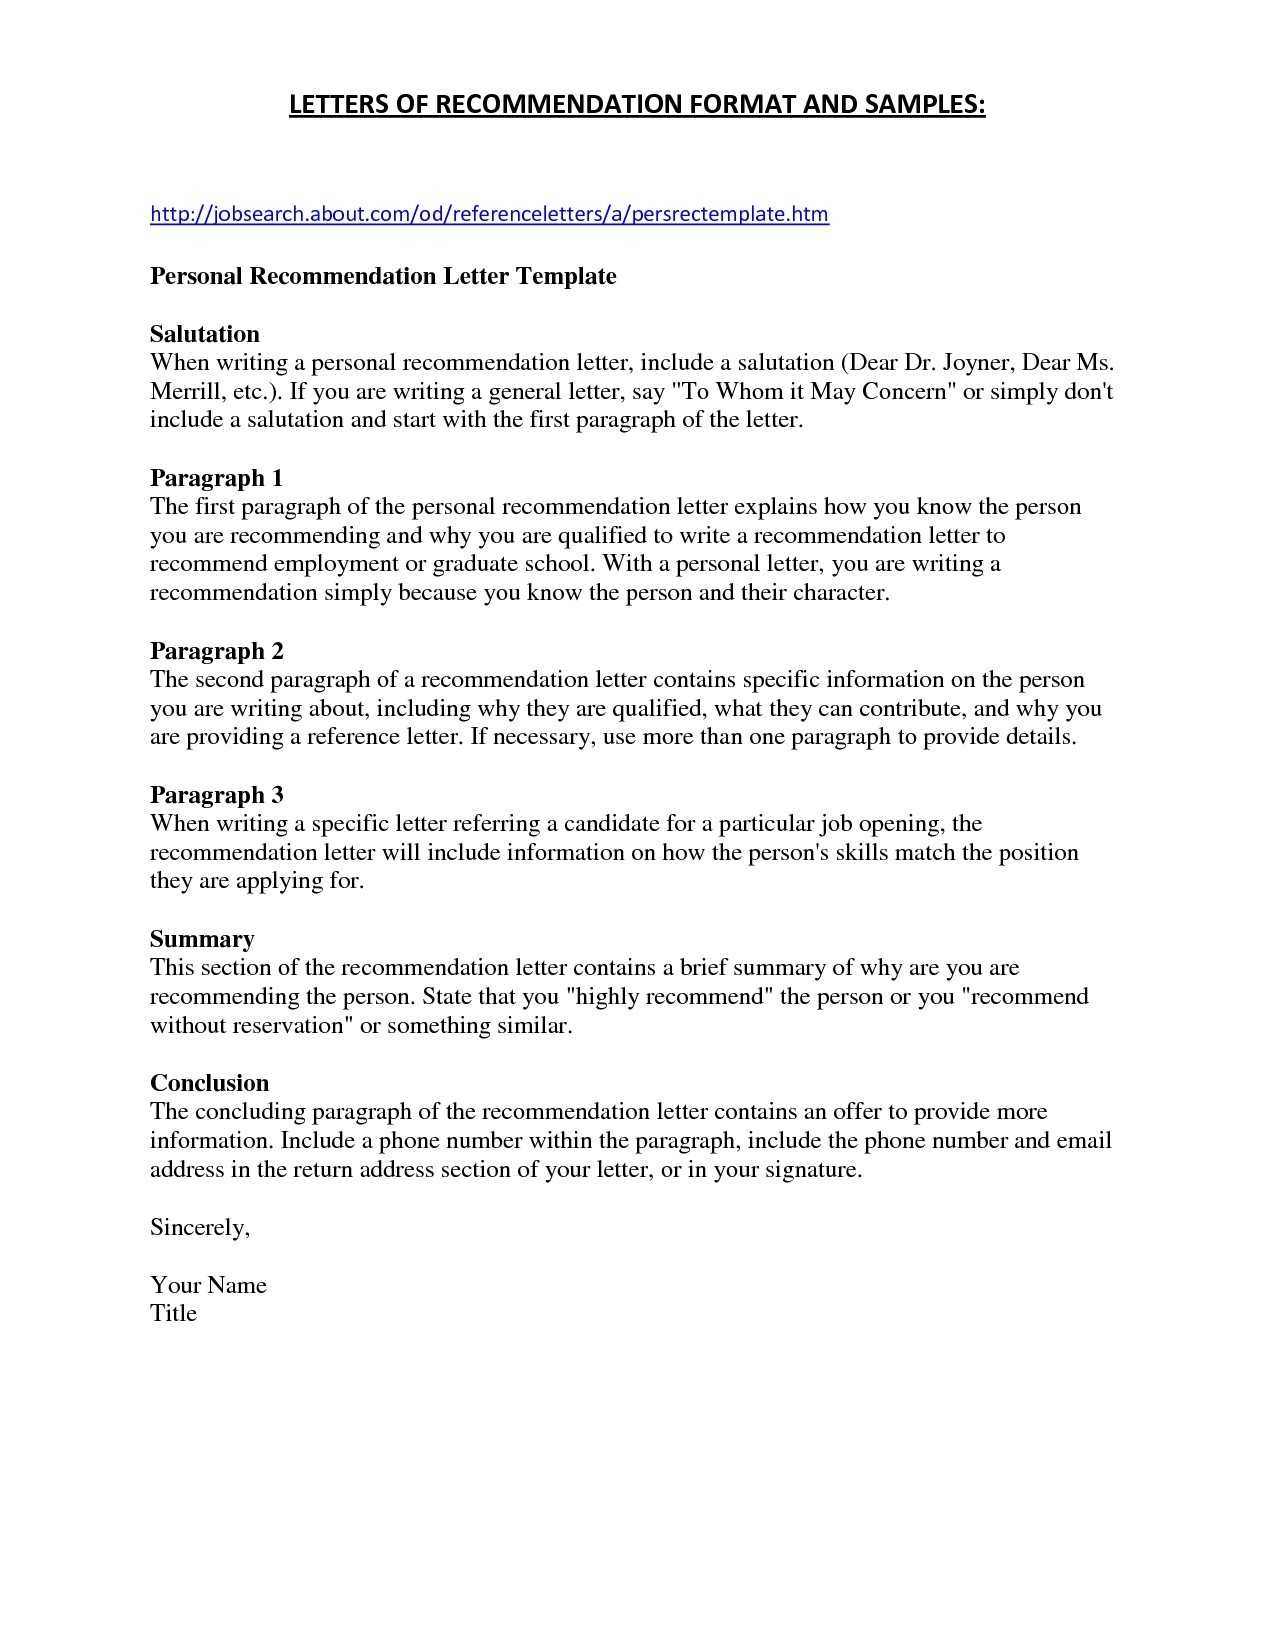 Personal Loan Template Letter - Personal Loan Guarantee Agreement Fresh Letter Agreement Sample